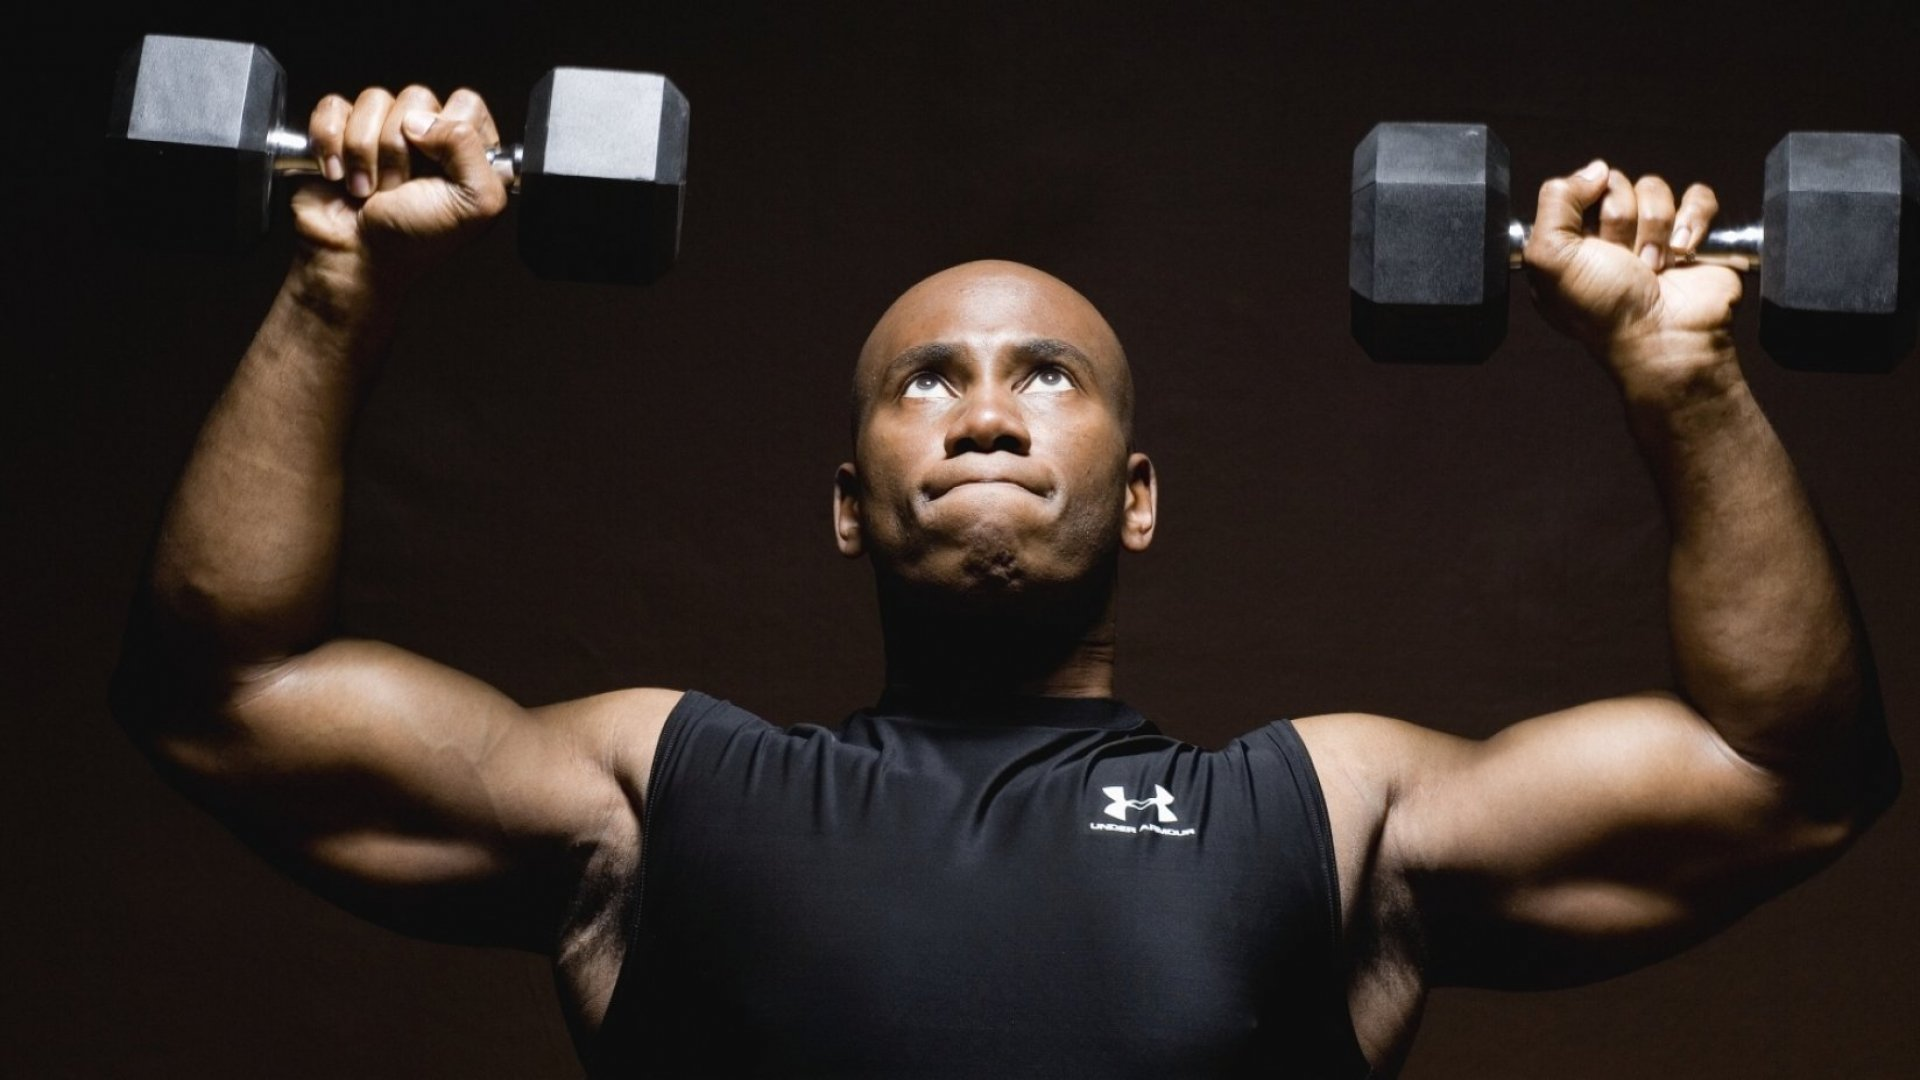 7 Ideas from Your Workout Regimen that Will Help Your Business Grow